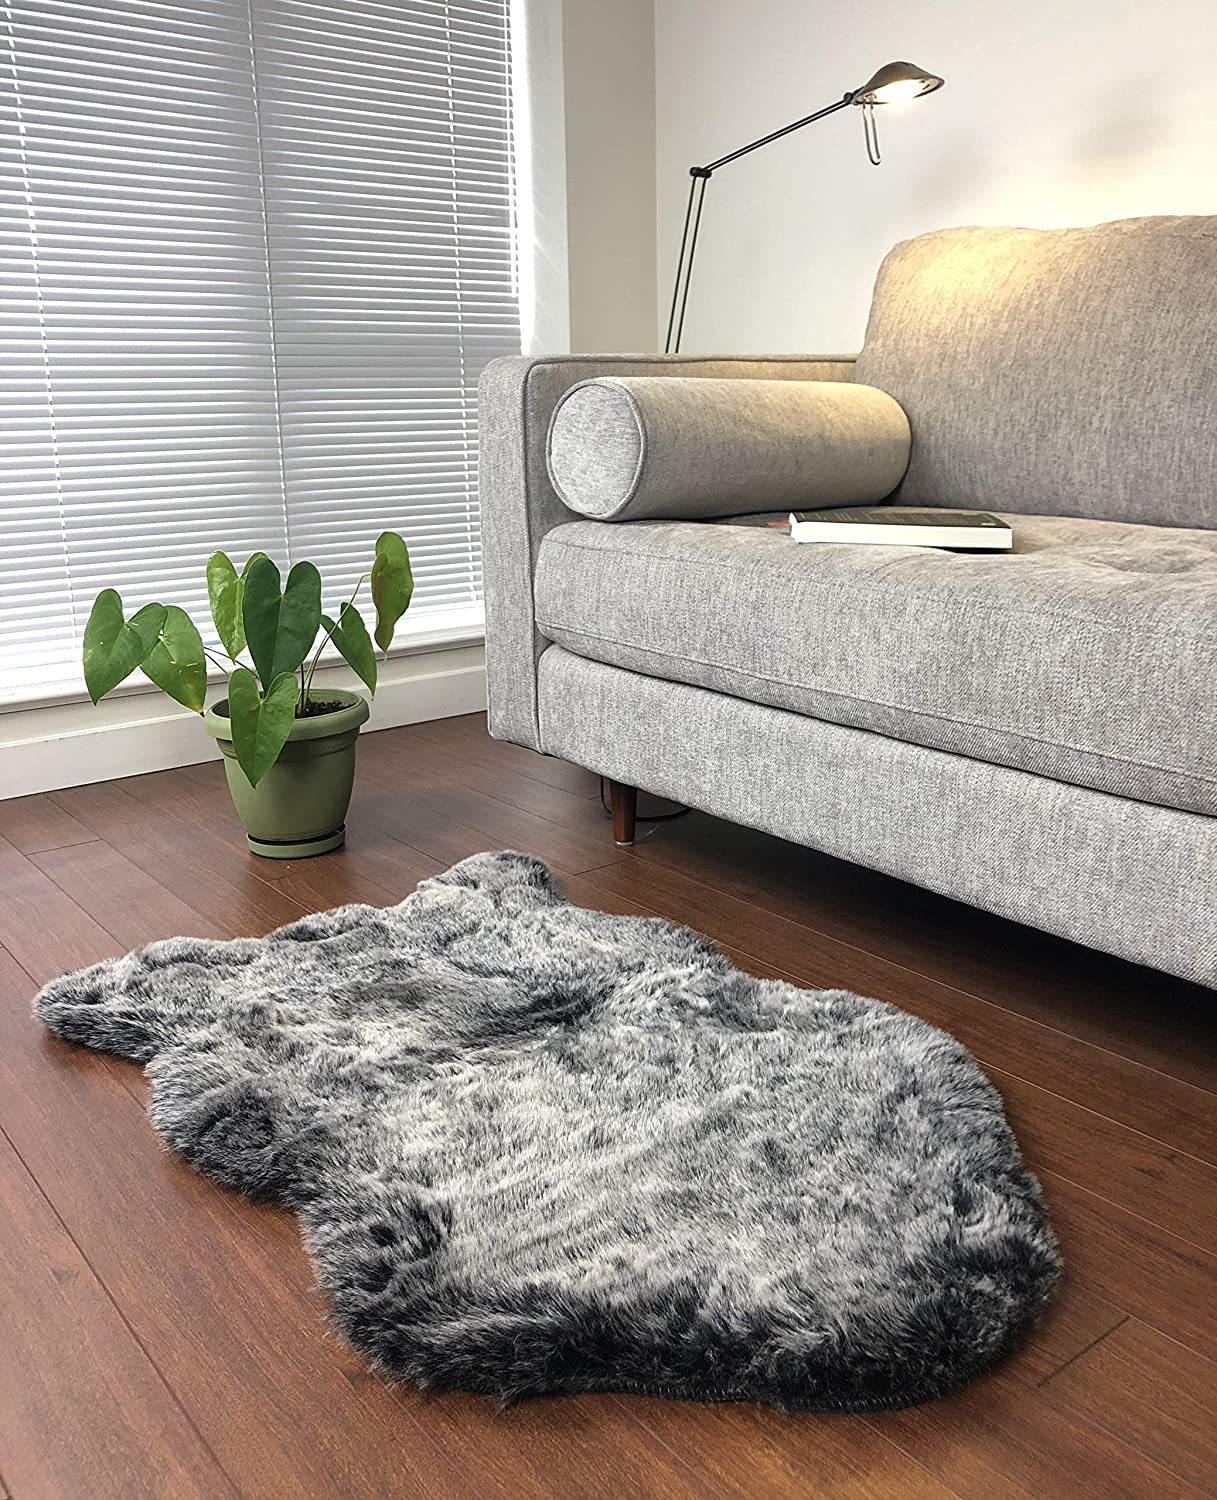 24 x 40 Hugs Living Soft and Fluffy Faux Fur Rug Natural Grey